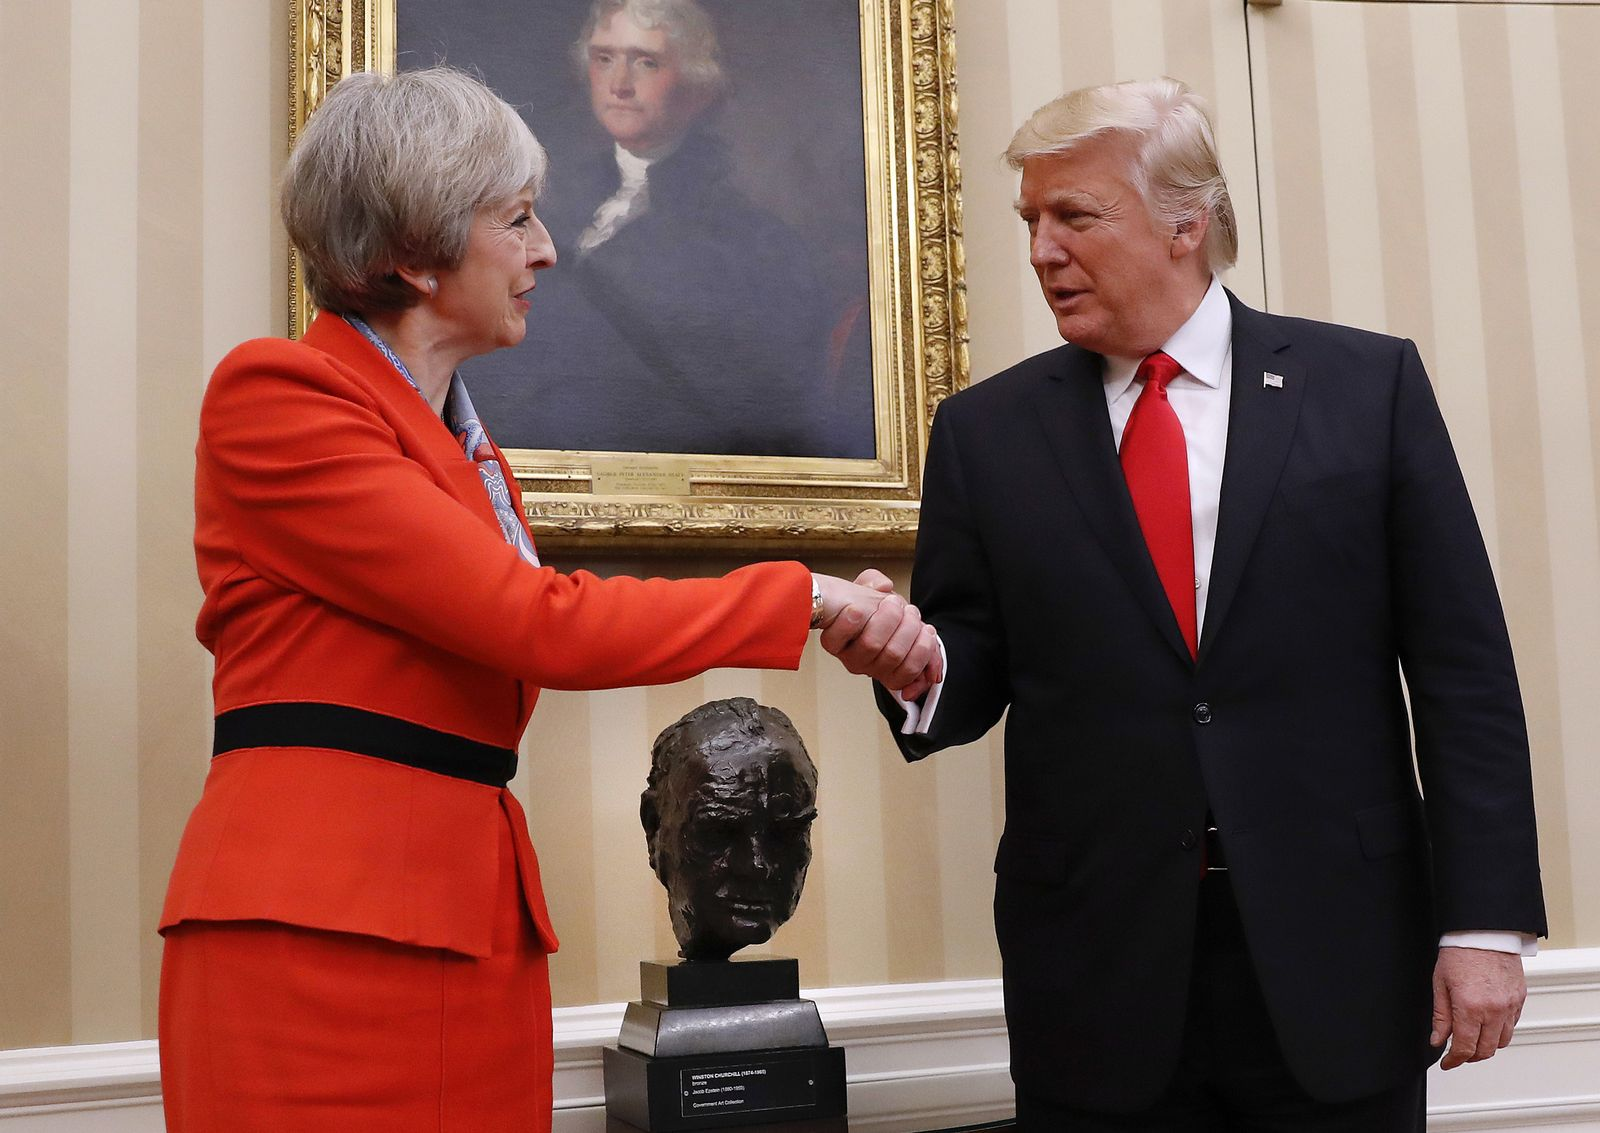 Theresa May / Donald Trump / Handshake